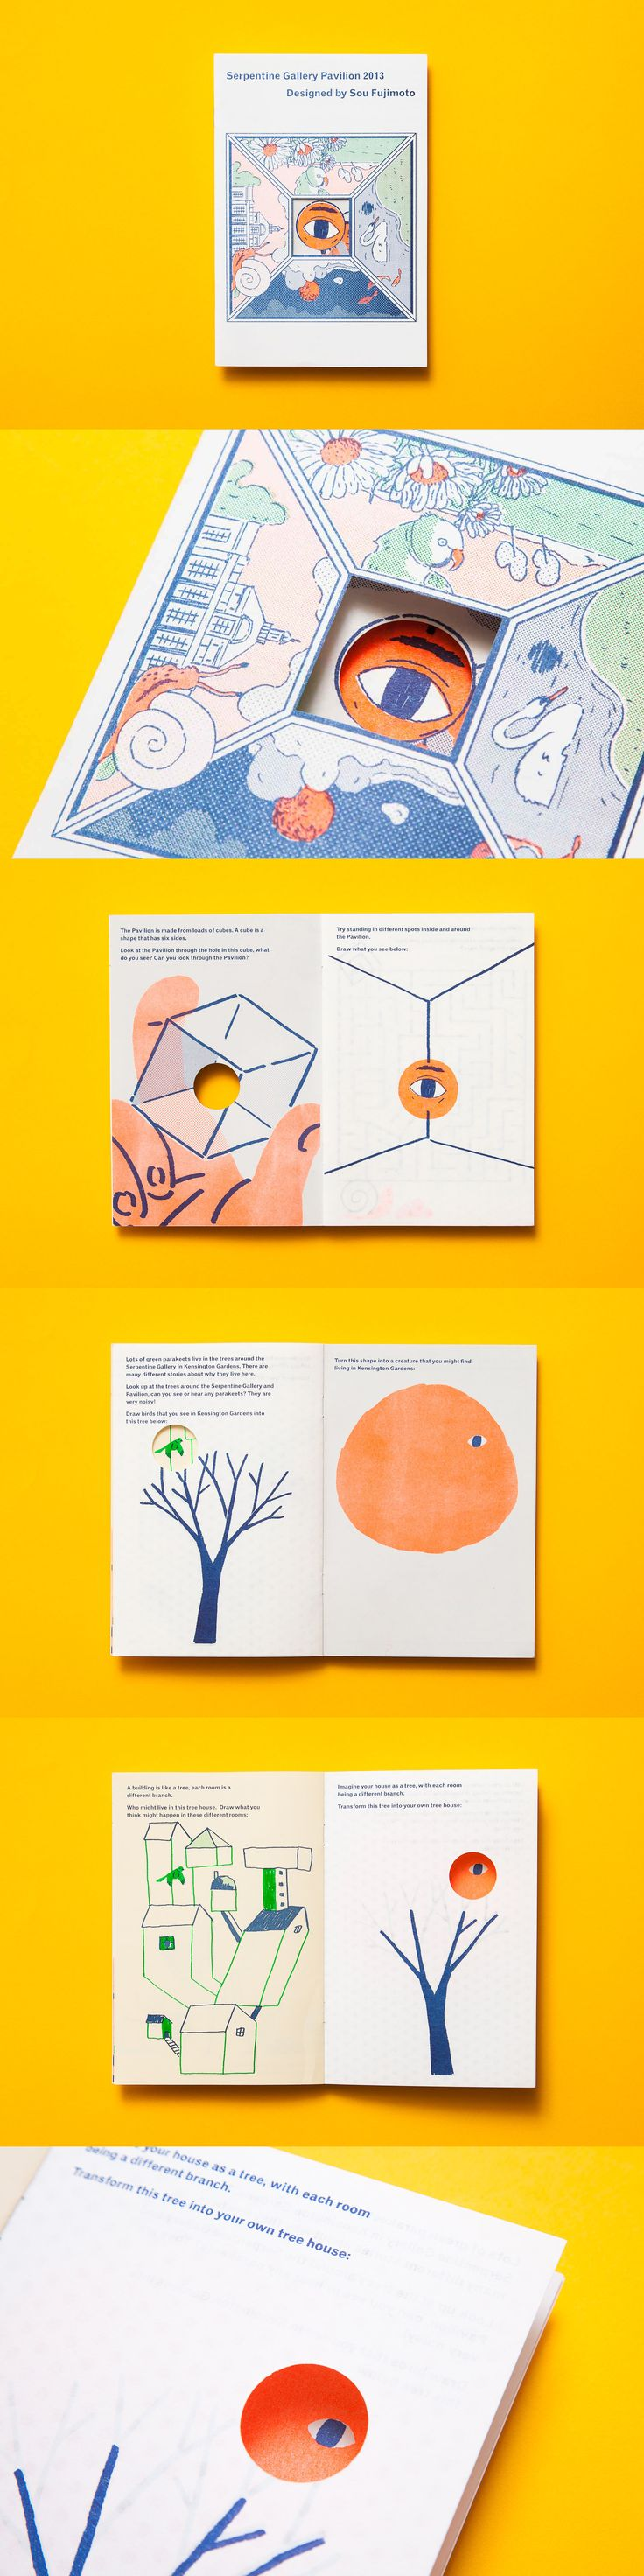 Serpentine Gallery pavillion artpack 2013, by Studio Hato with illustrations by Mak Ying Ping